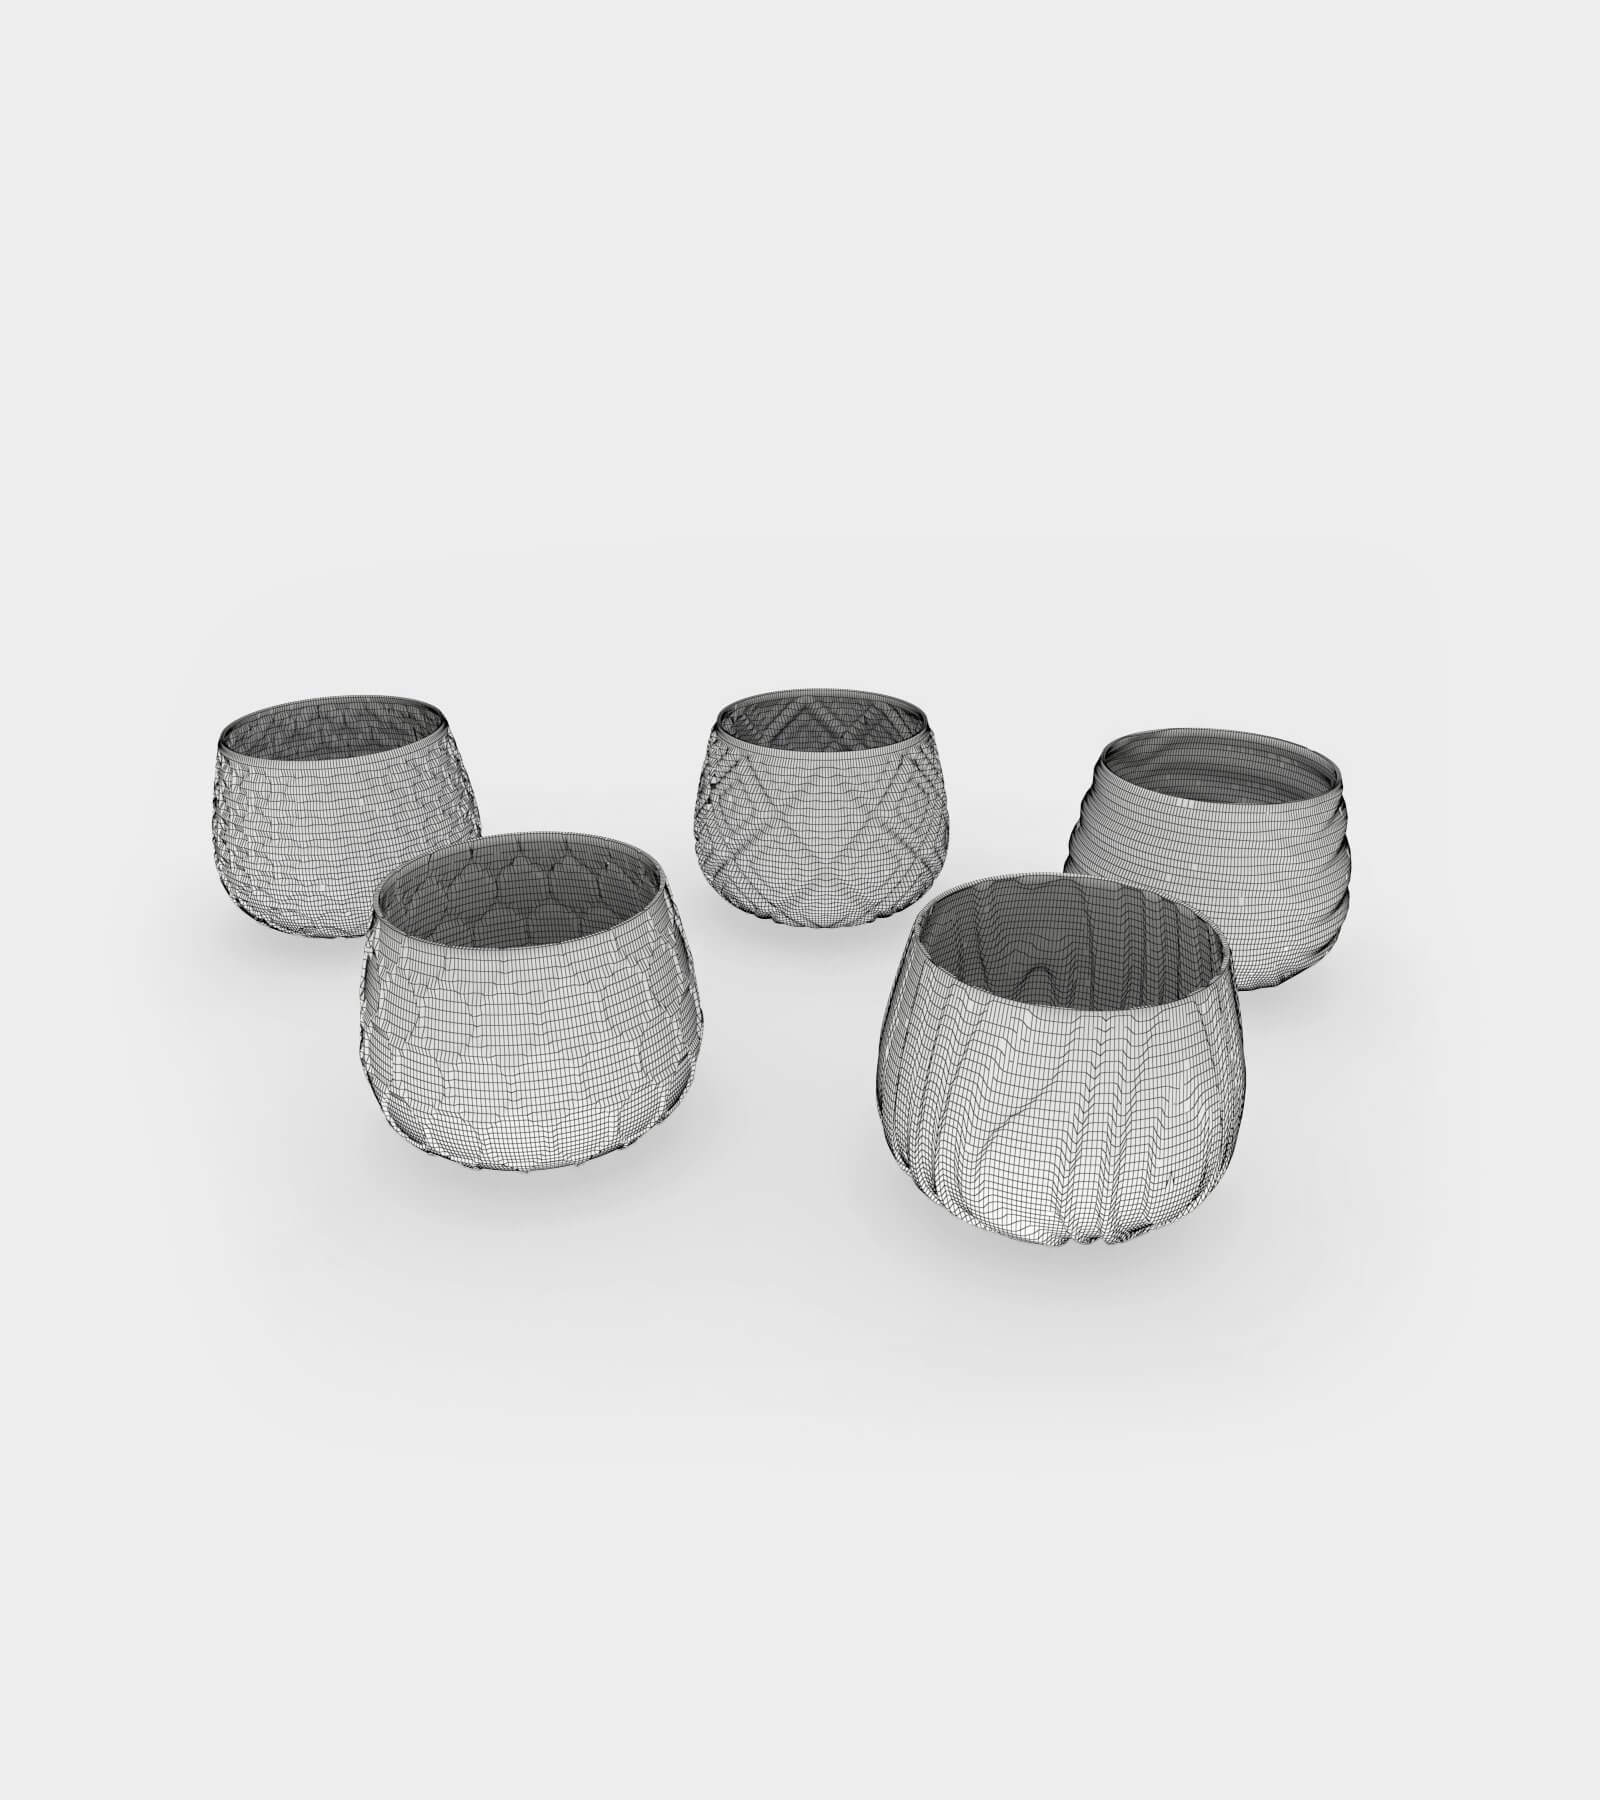 Different water and wine glasses with patterns-wire-1 3D Model